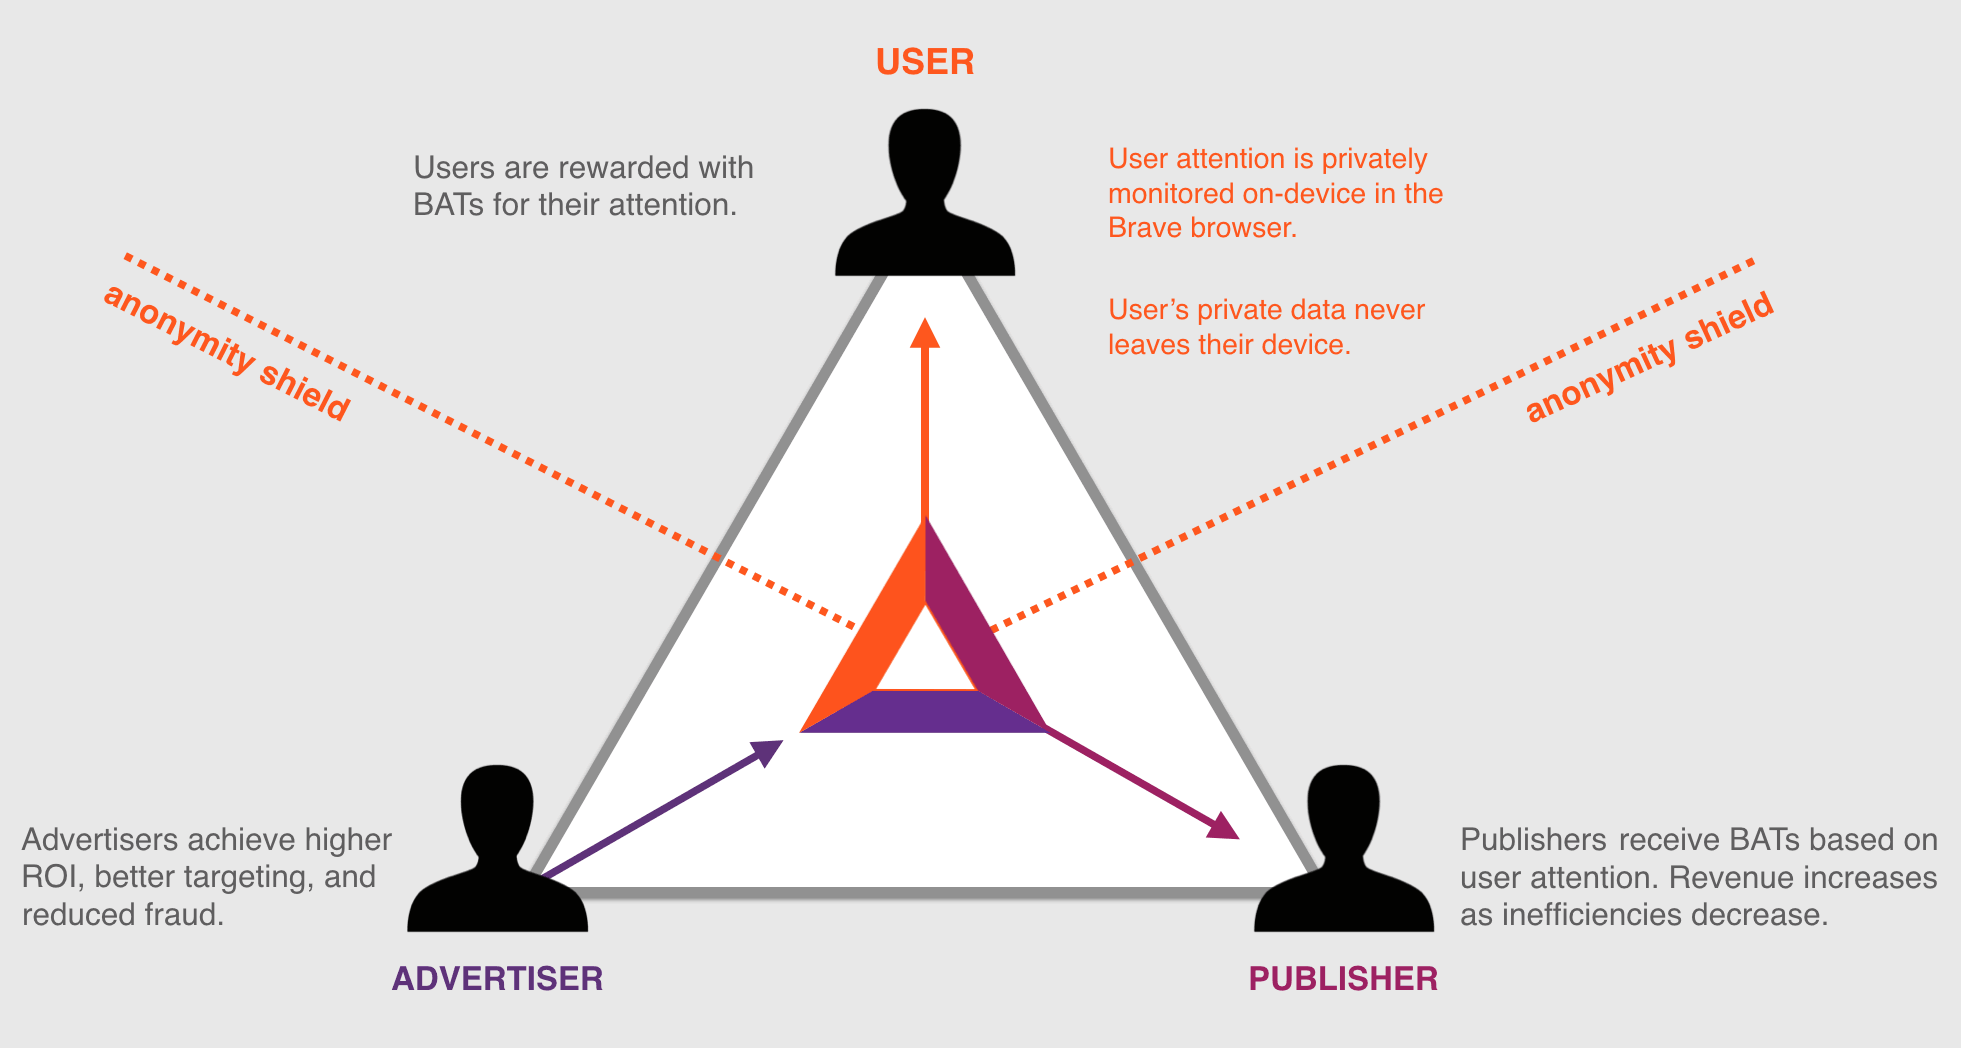 The user/publisher/advertiser payment model on which BAT is based. From https://basicattentiontoken.org/